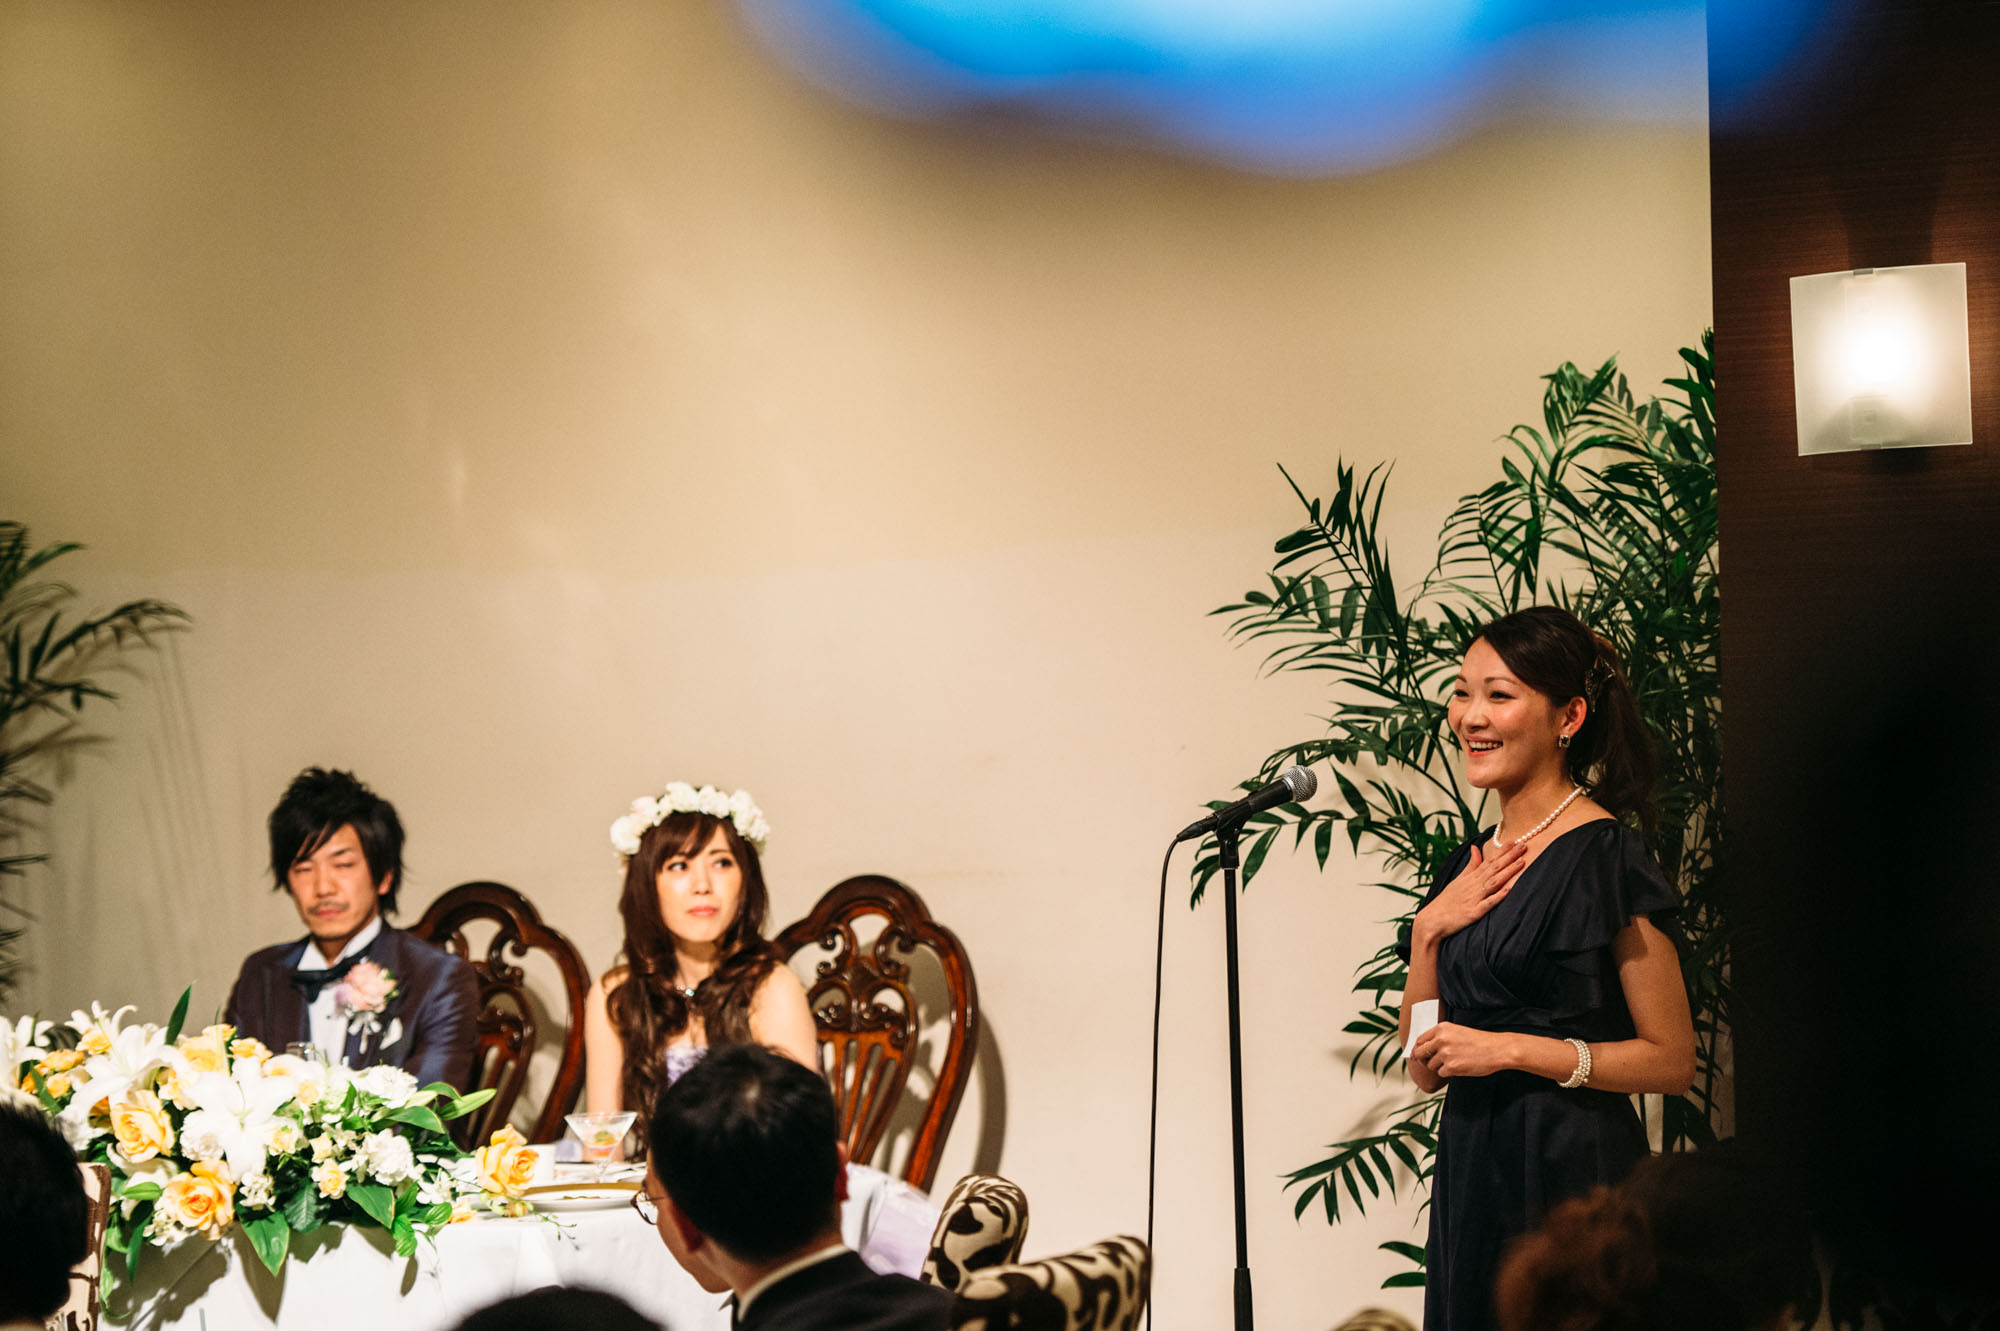 nagoya wedding147